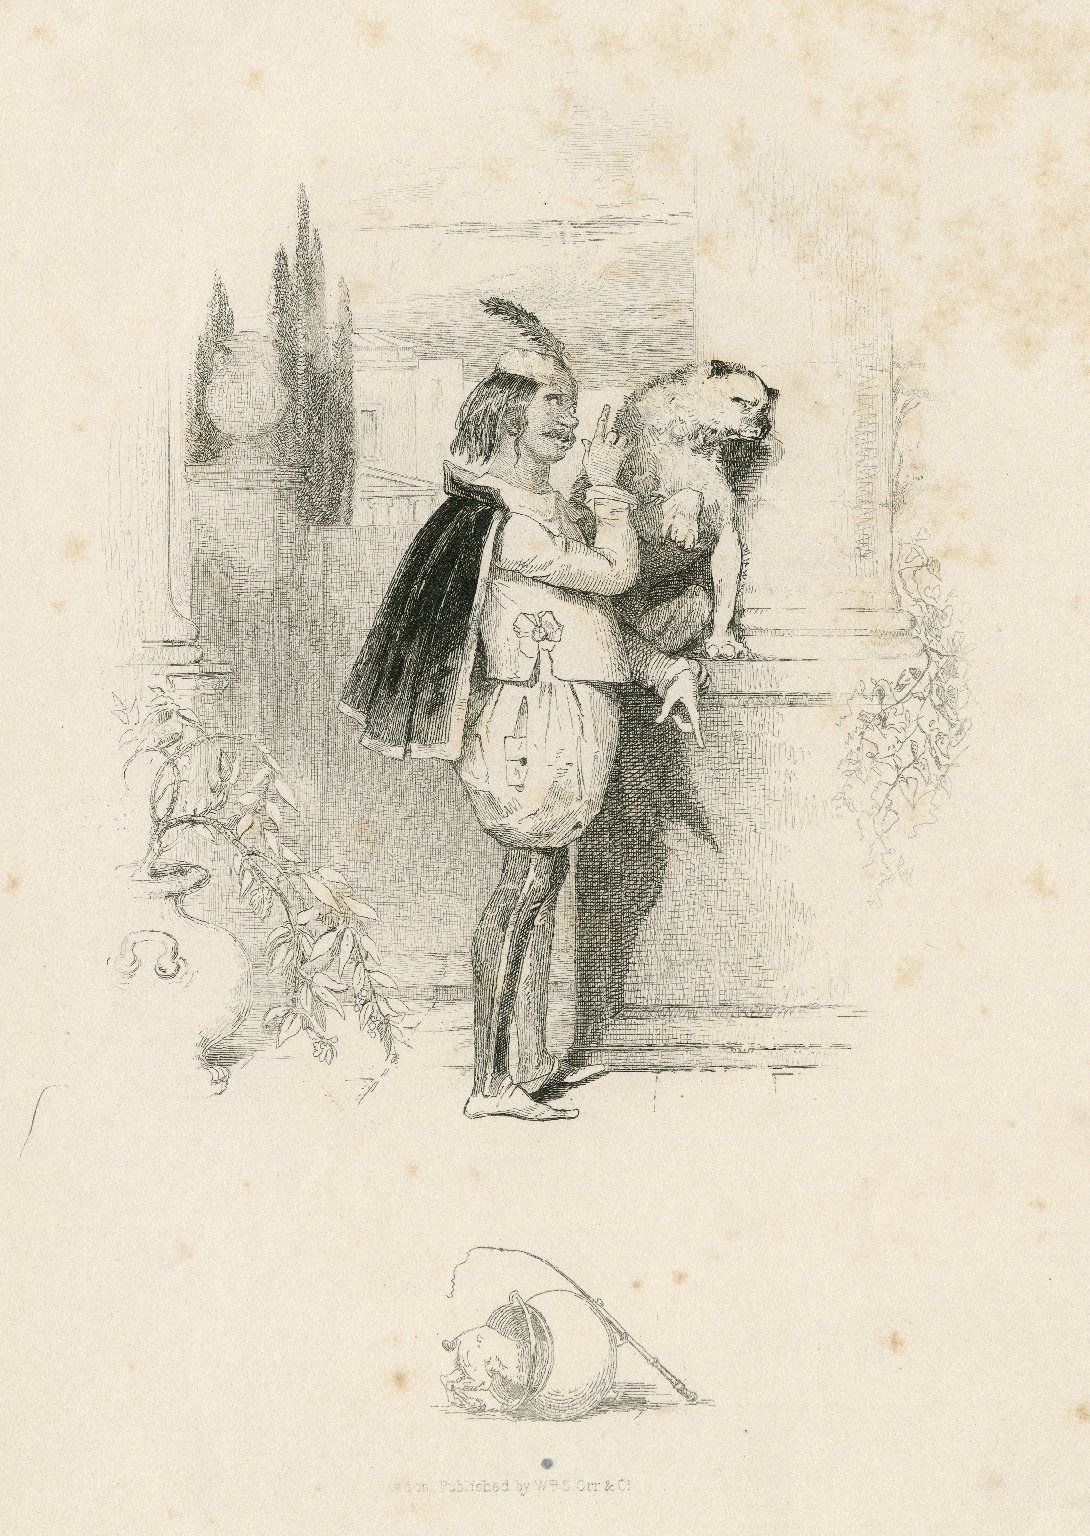 [Launce and his dog, in Two gentlemen of Verona, act 5, sc. 2] [graphic] / [Joseph Kenny Meadows].